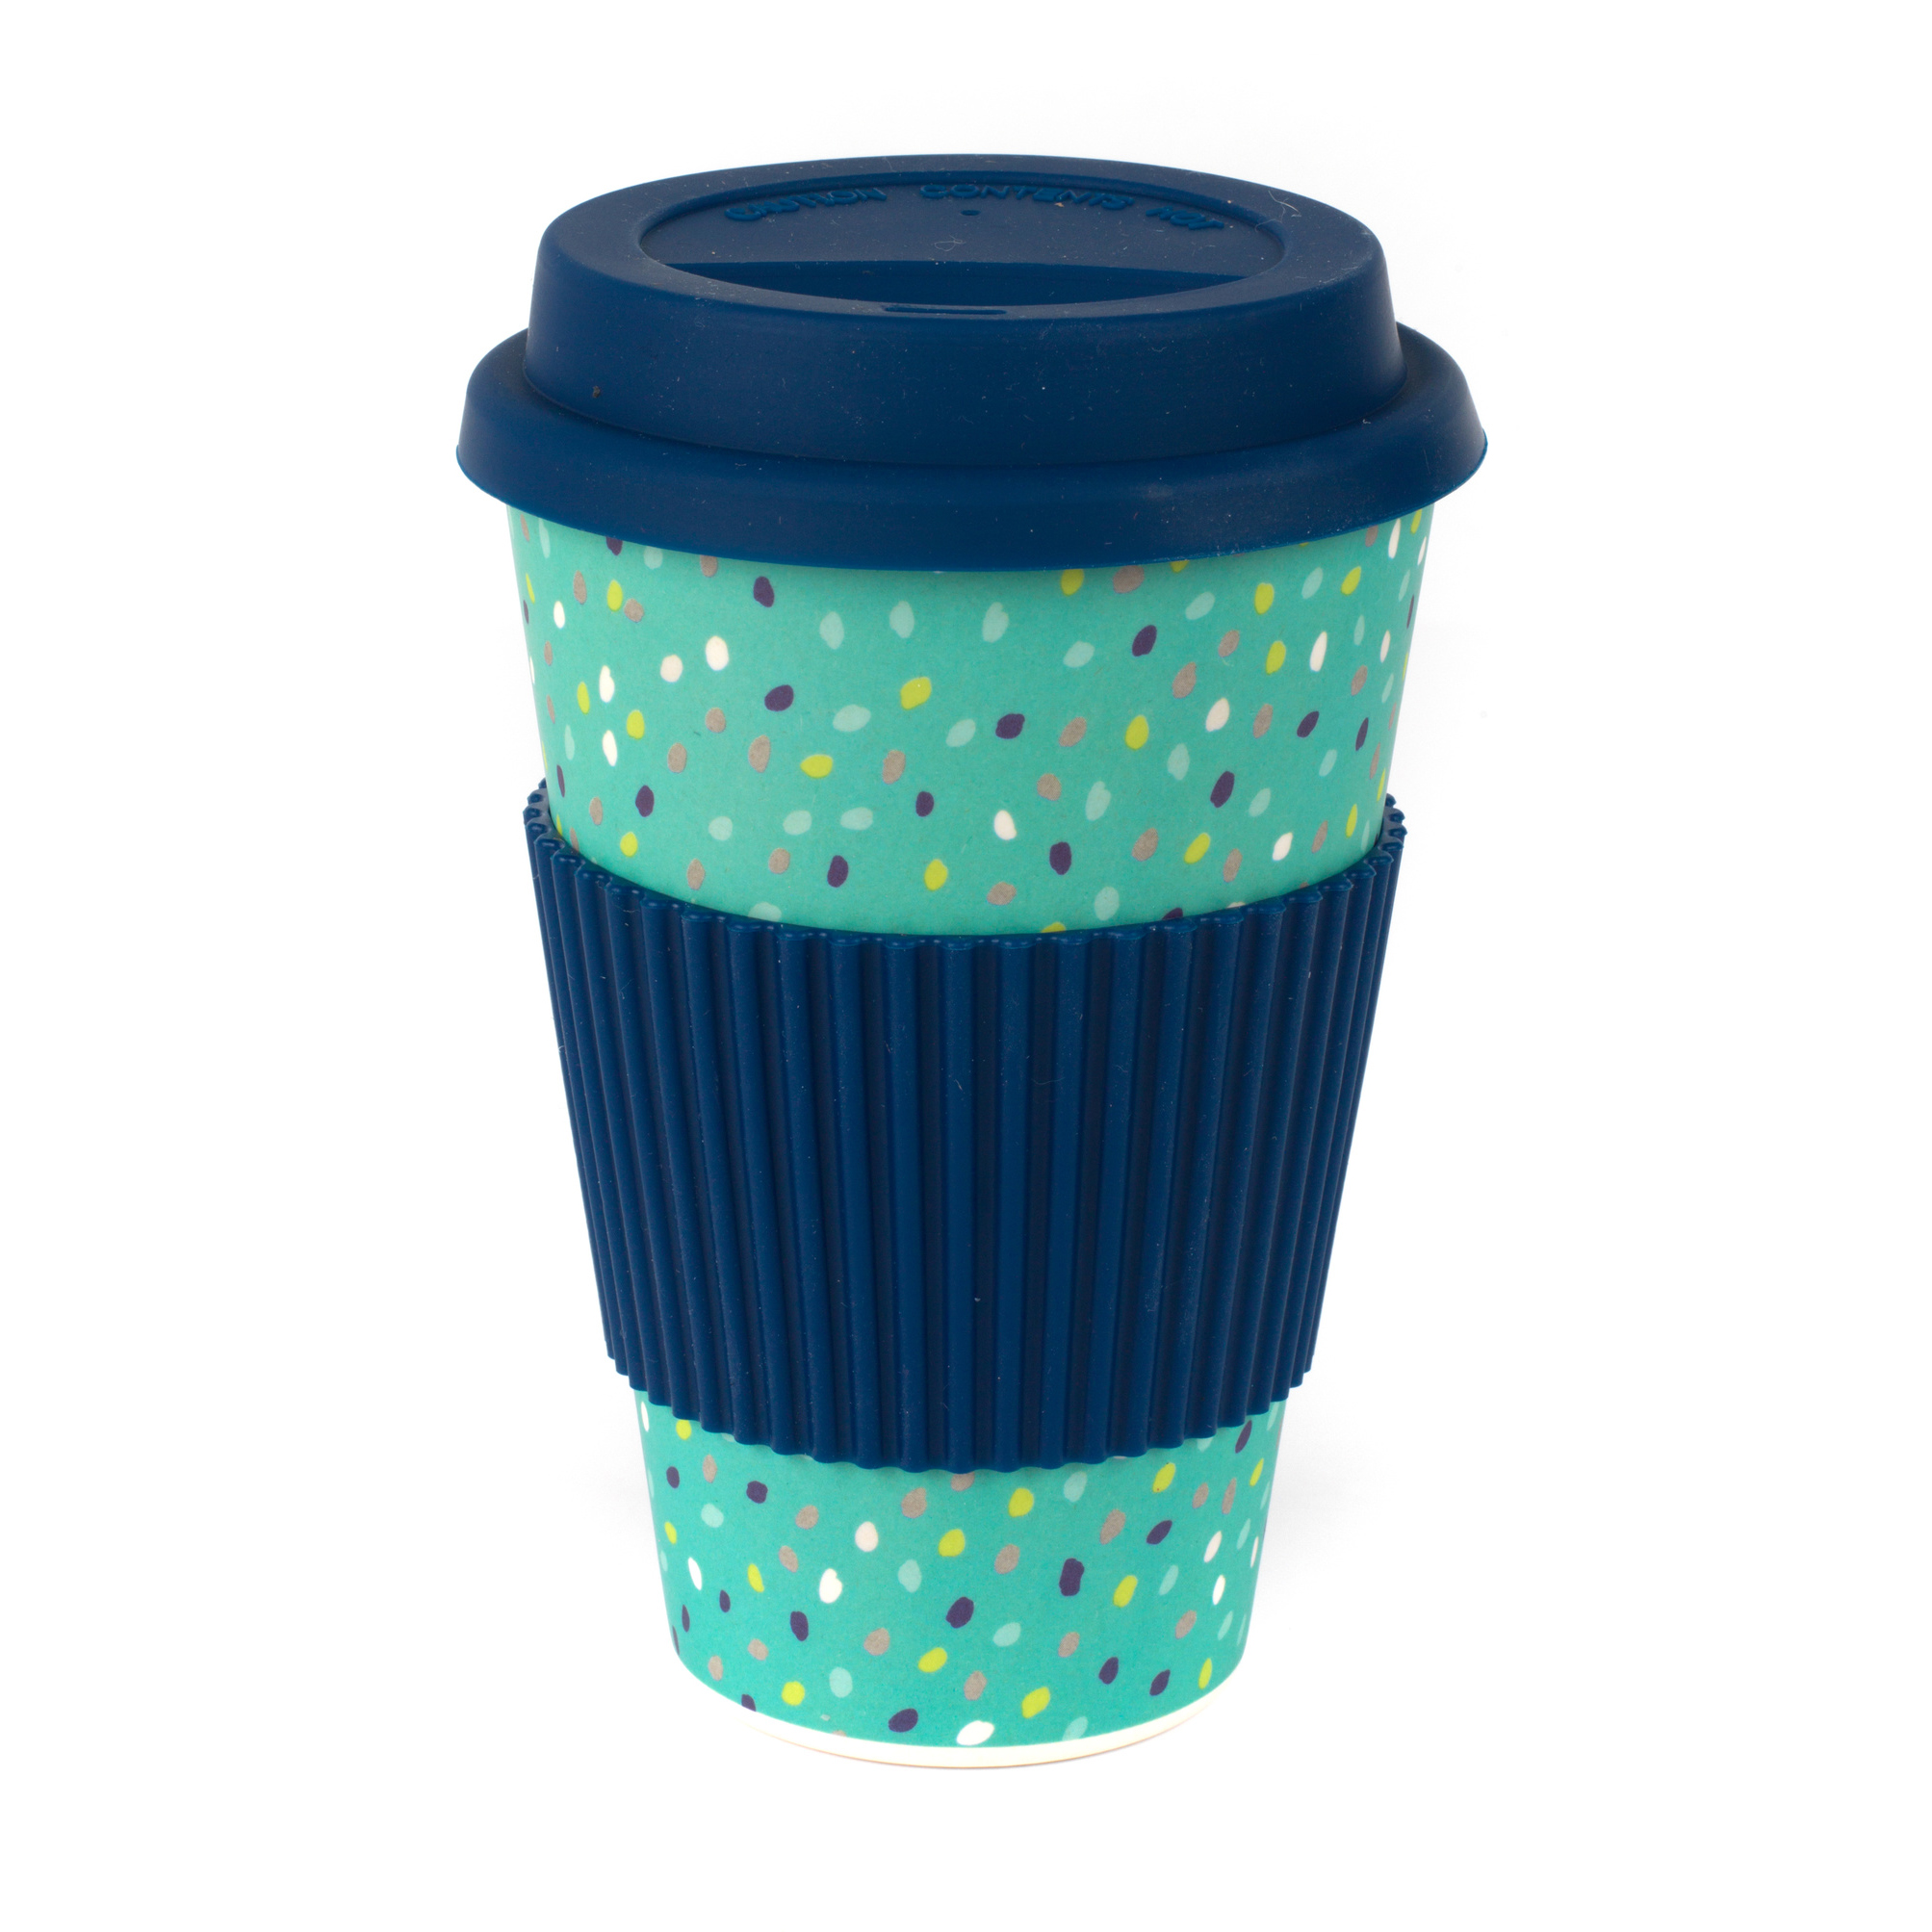 Cup Cm06191 Bamboo Travel Reusable MugSet Cambridge Of 6 Speckle Coffee XPZiOku